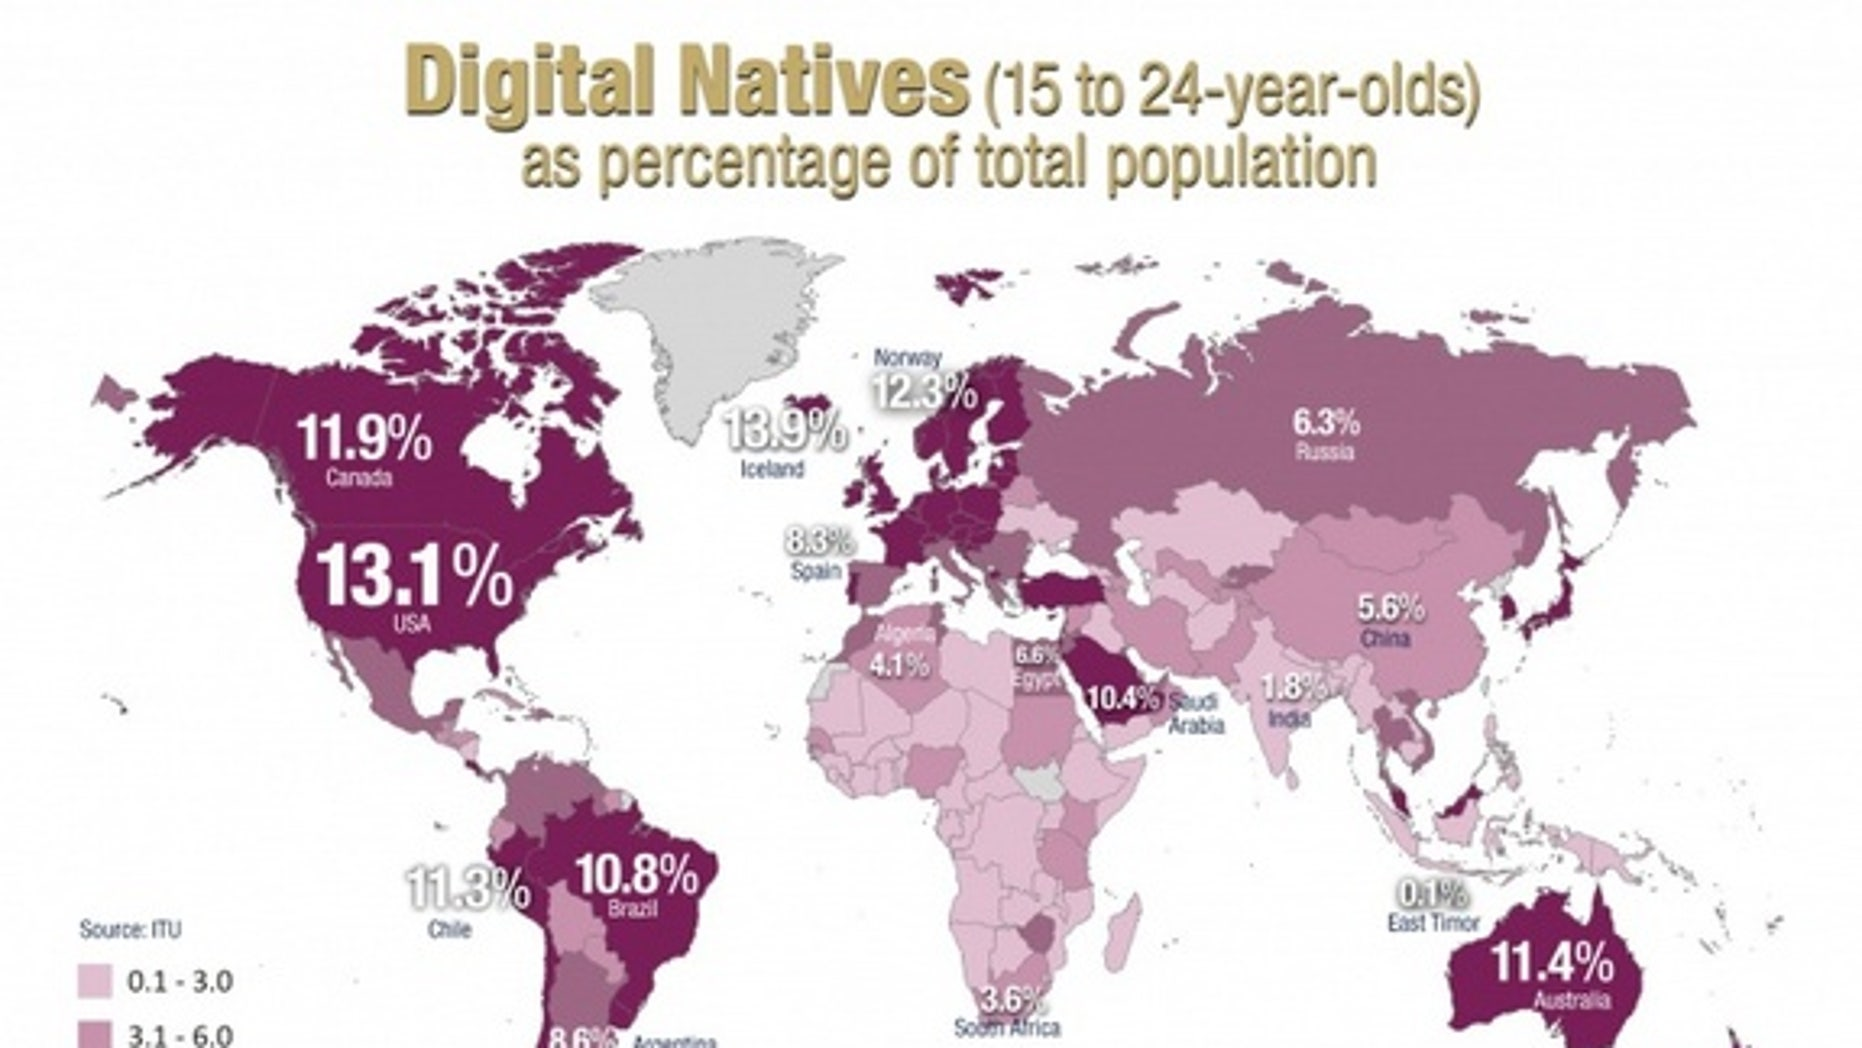 Digital natives as a percentage of each country's total population.